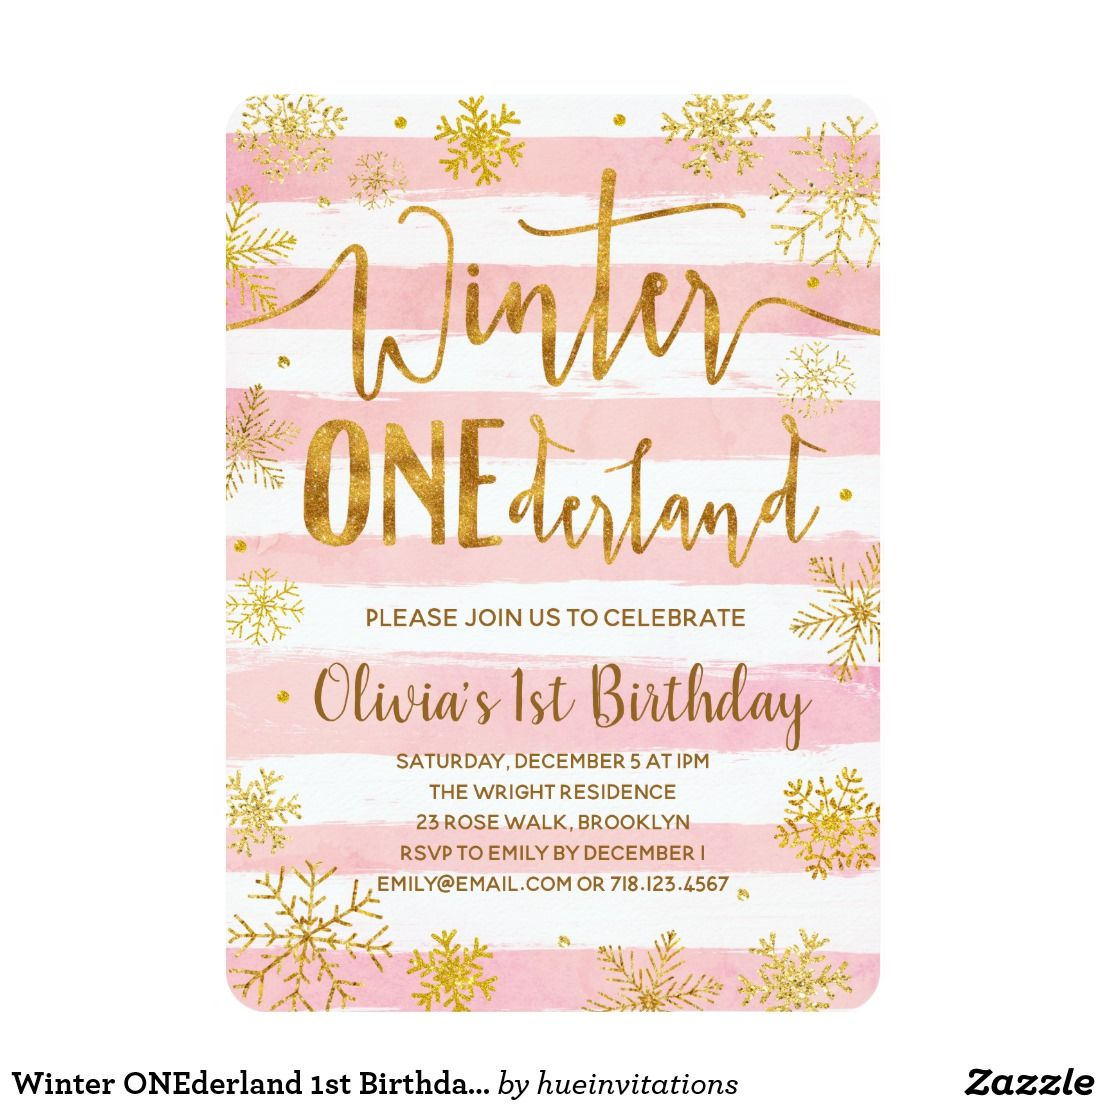 Winter Onederland 1st Birthday Invitation Pink Winter Onederland